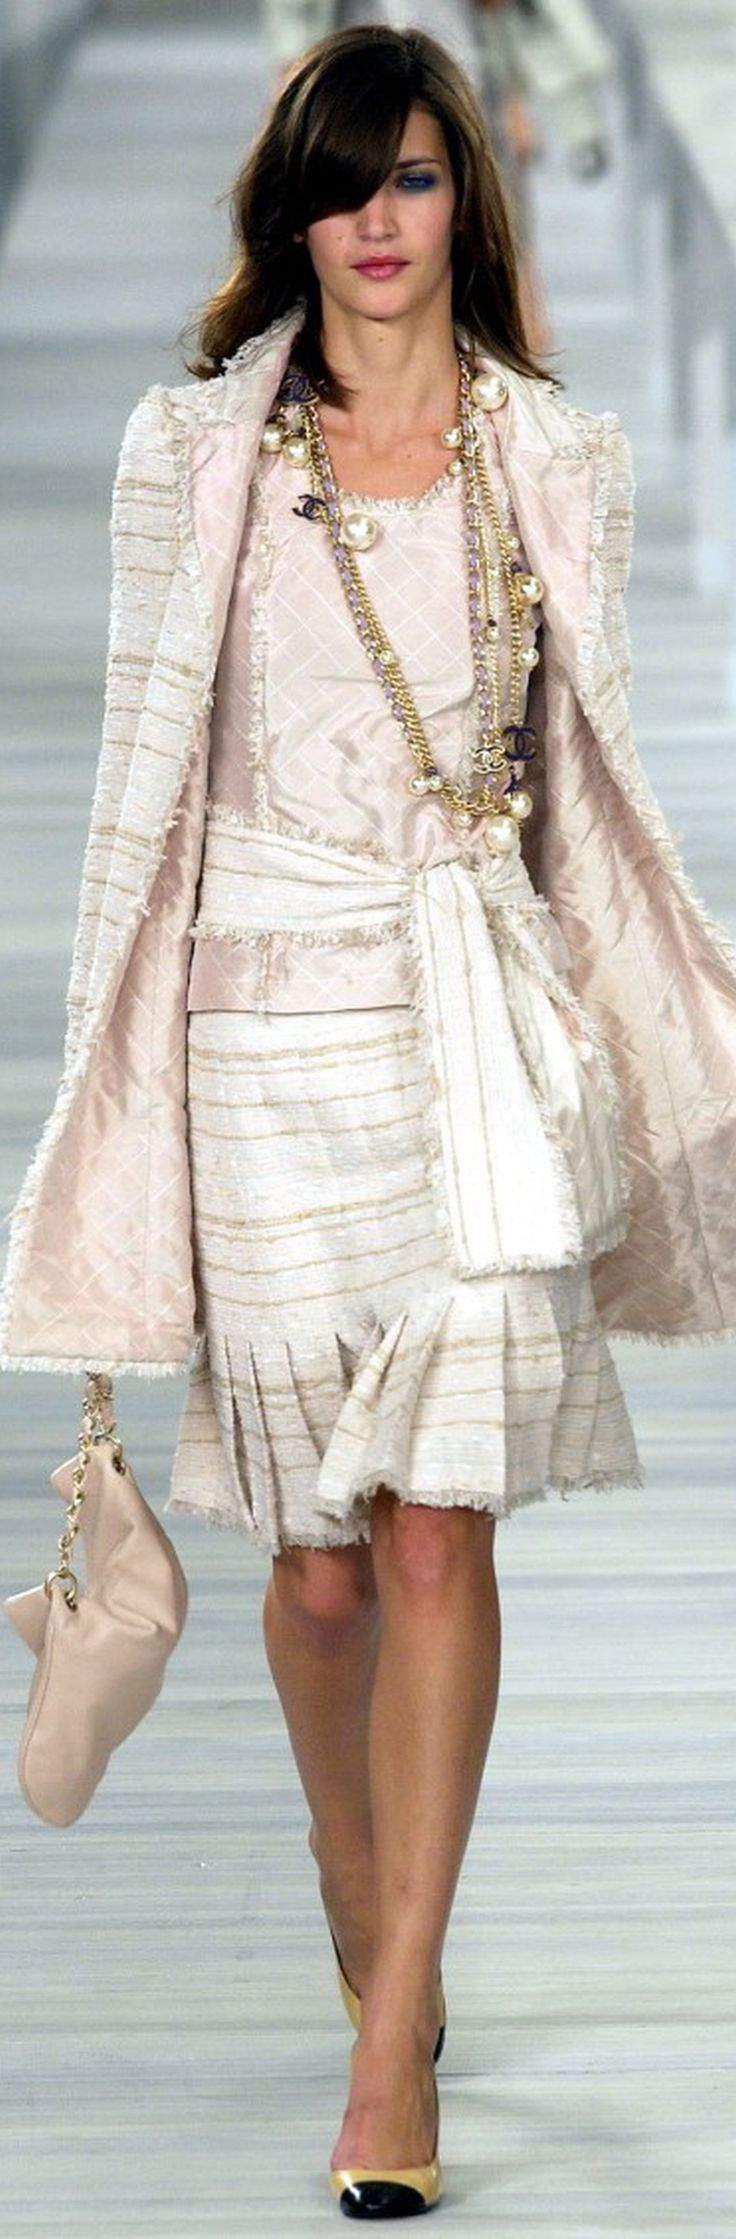 Chanel is often Youthful and Romantic, (and Classic - as in the pleats and jacket shape here) but this one has a lot of sparkle and sheen, taking it into the Angelic range. #reflectingfashion #robinality